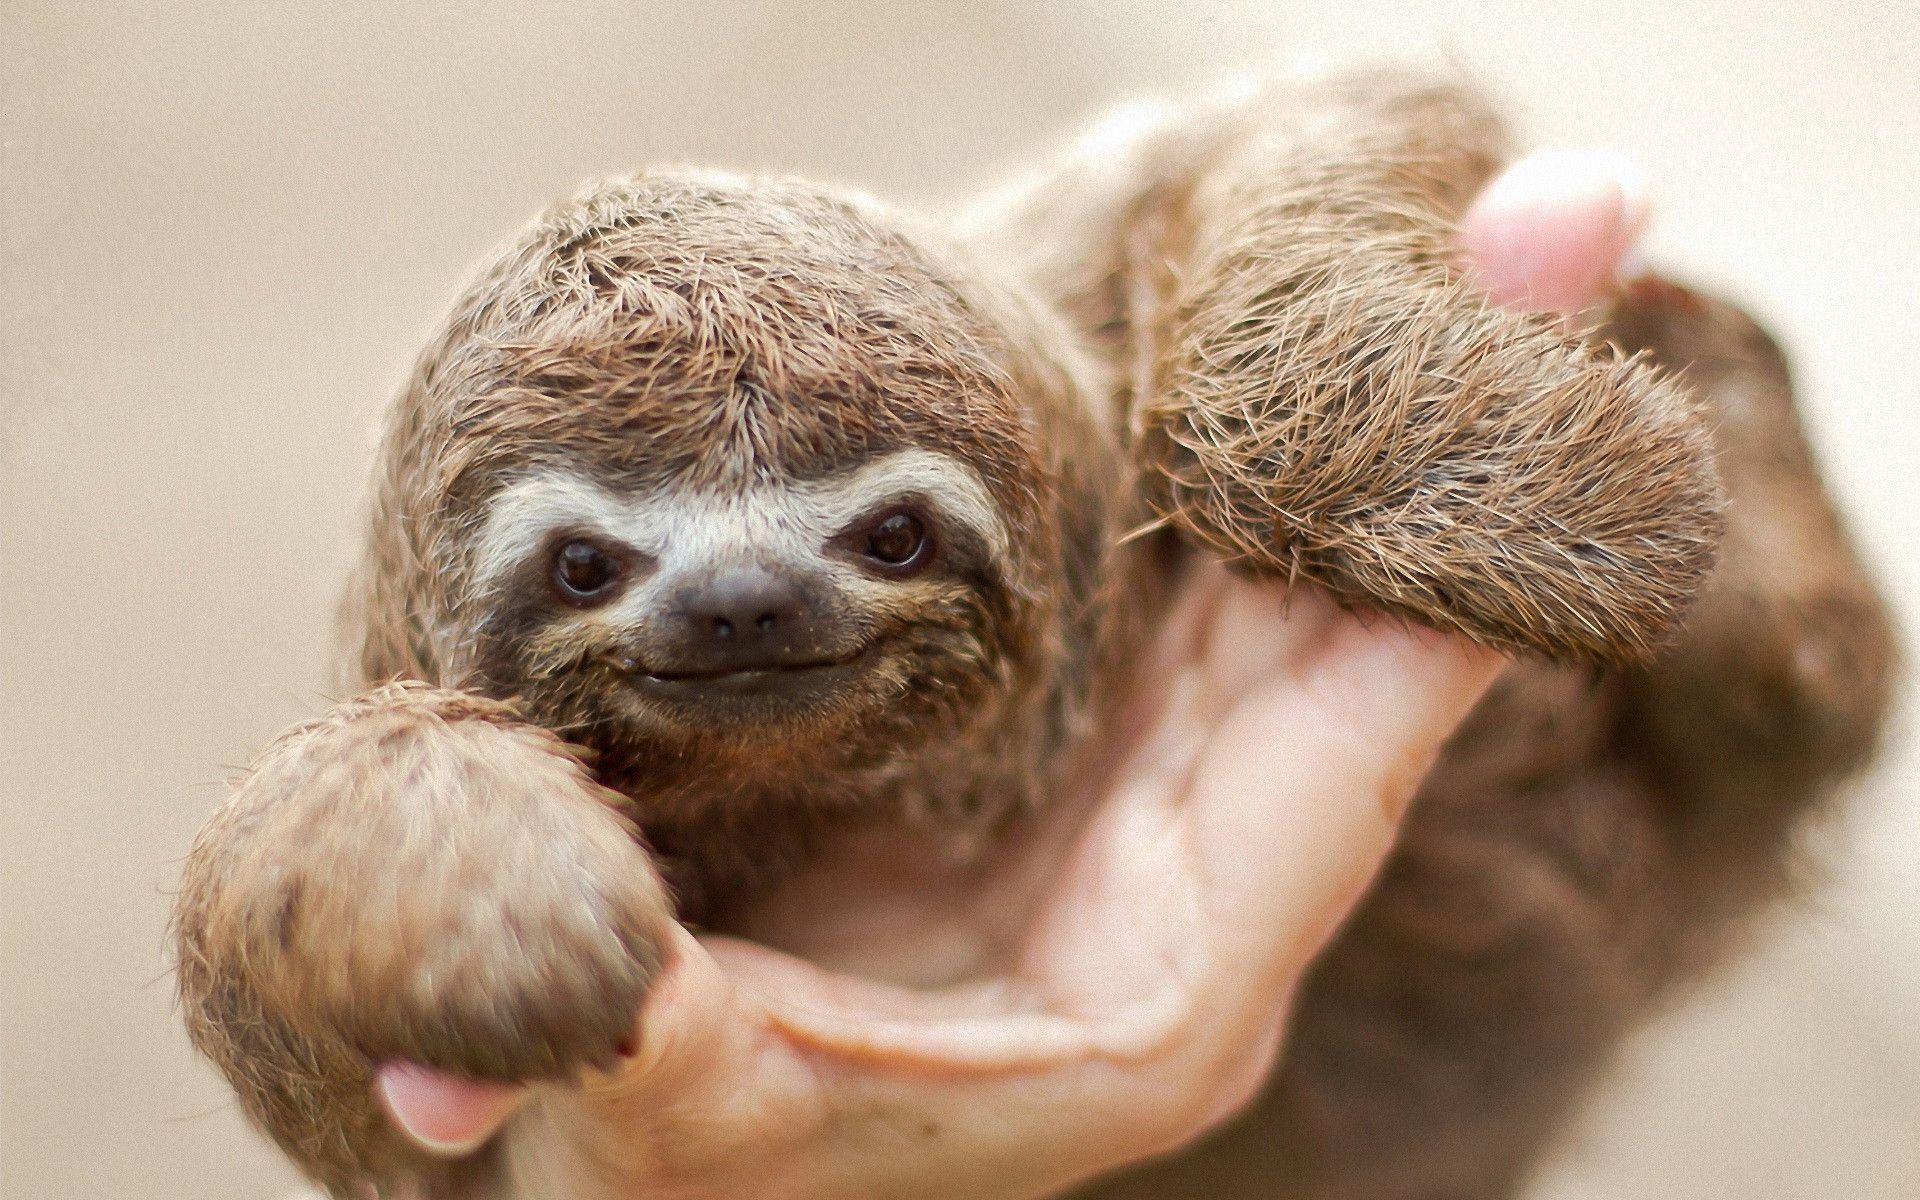 5 Sloth Wallpapers